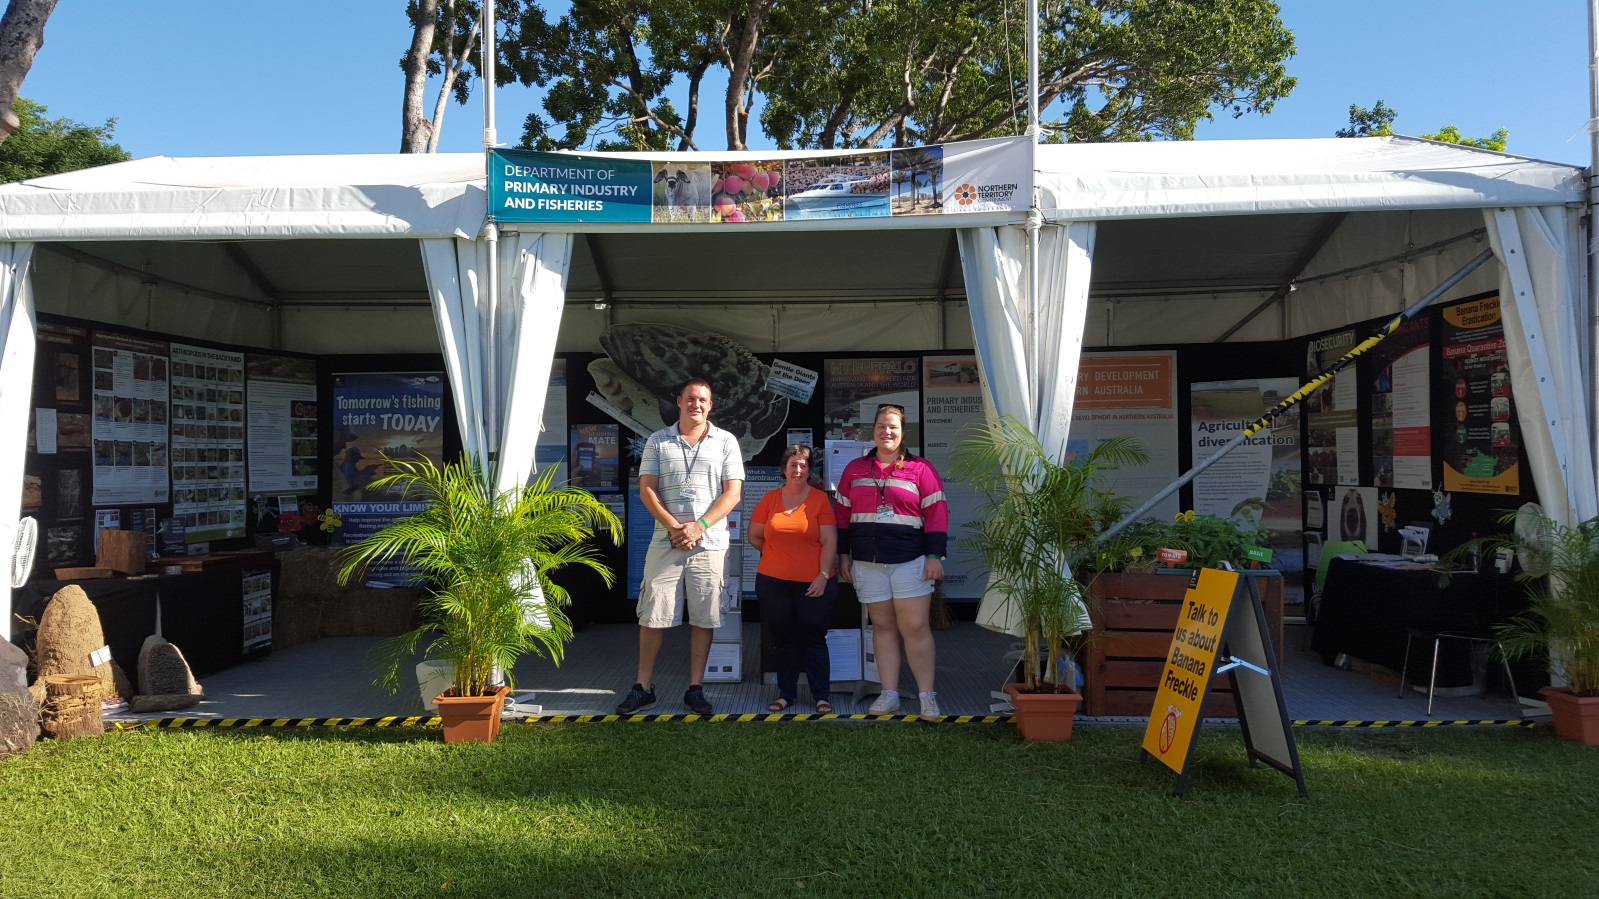 DPIF staff Cameron Hartley, Heika Oestreich and Amy Dobell at the Freds Pass Show